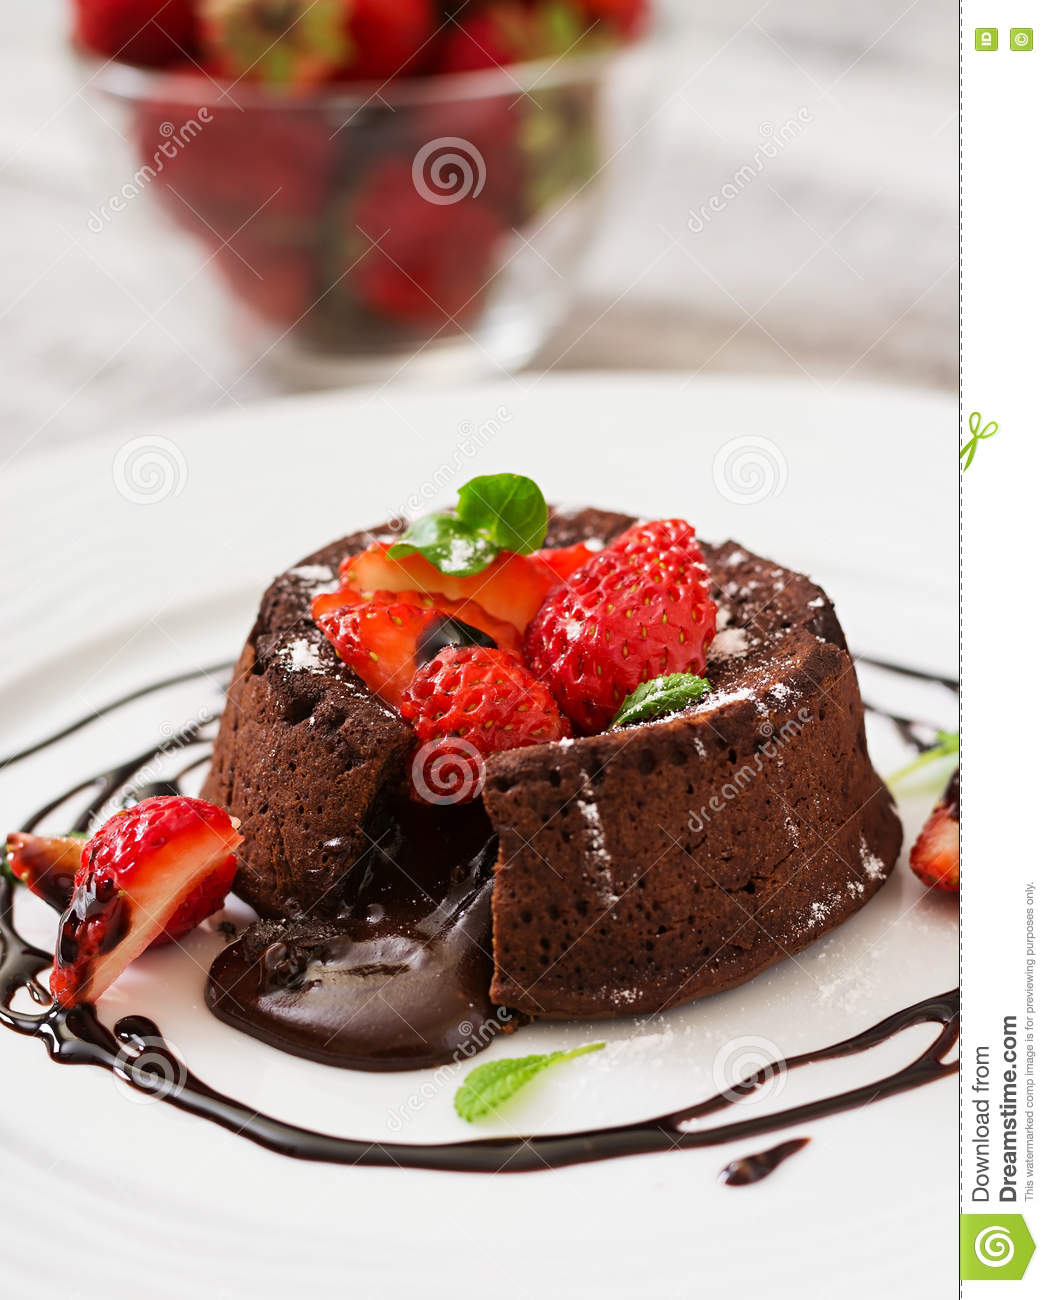 Chocolate fondant (cupcake) with strawberries